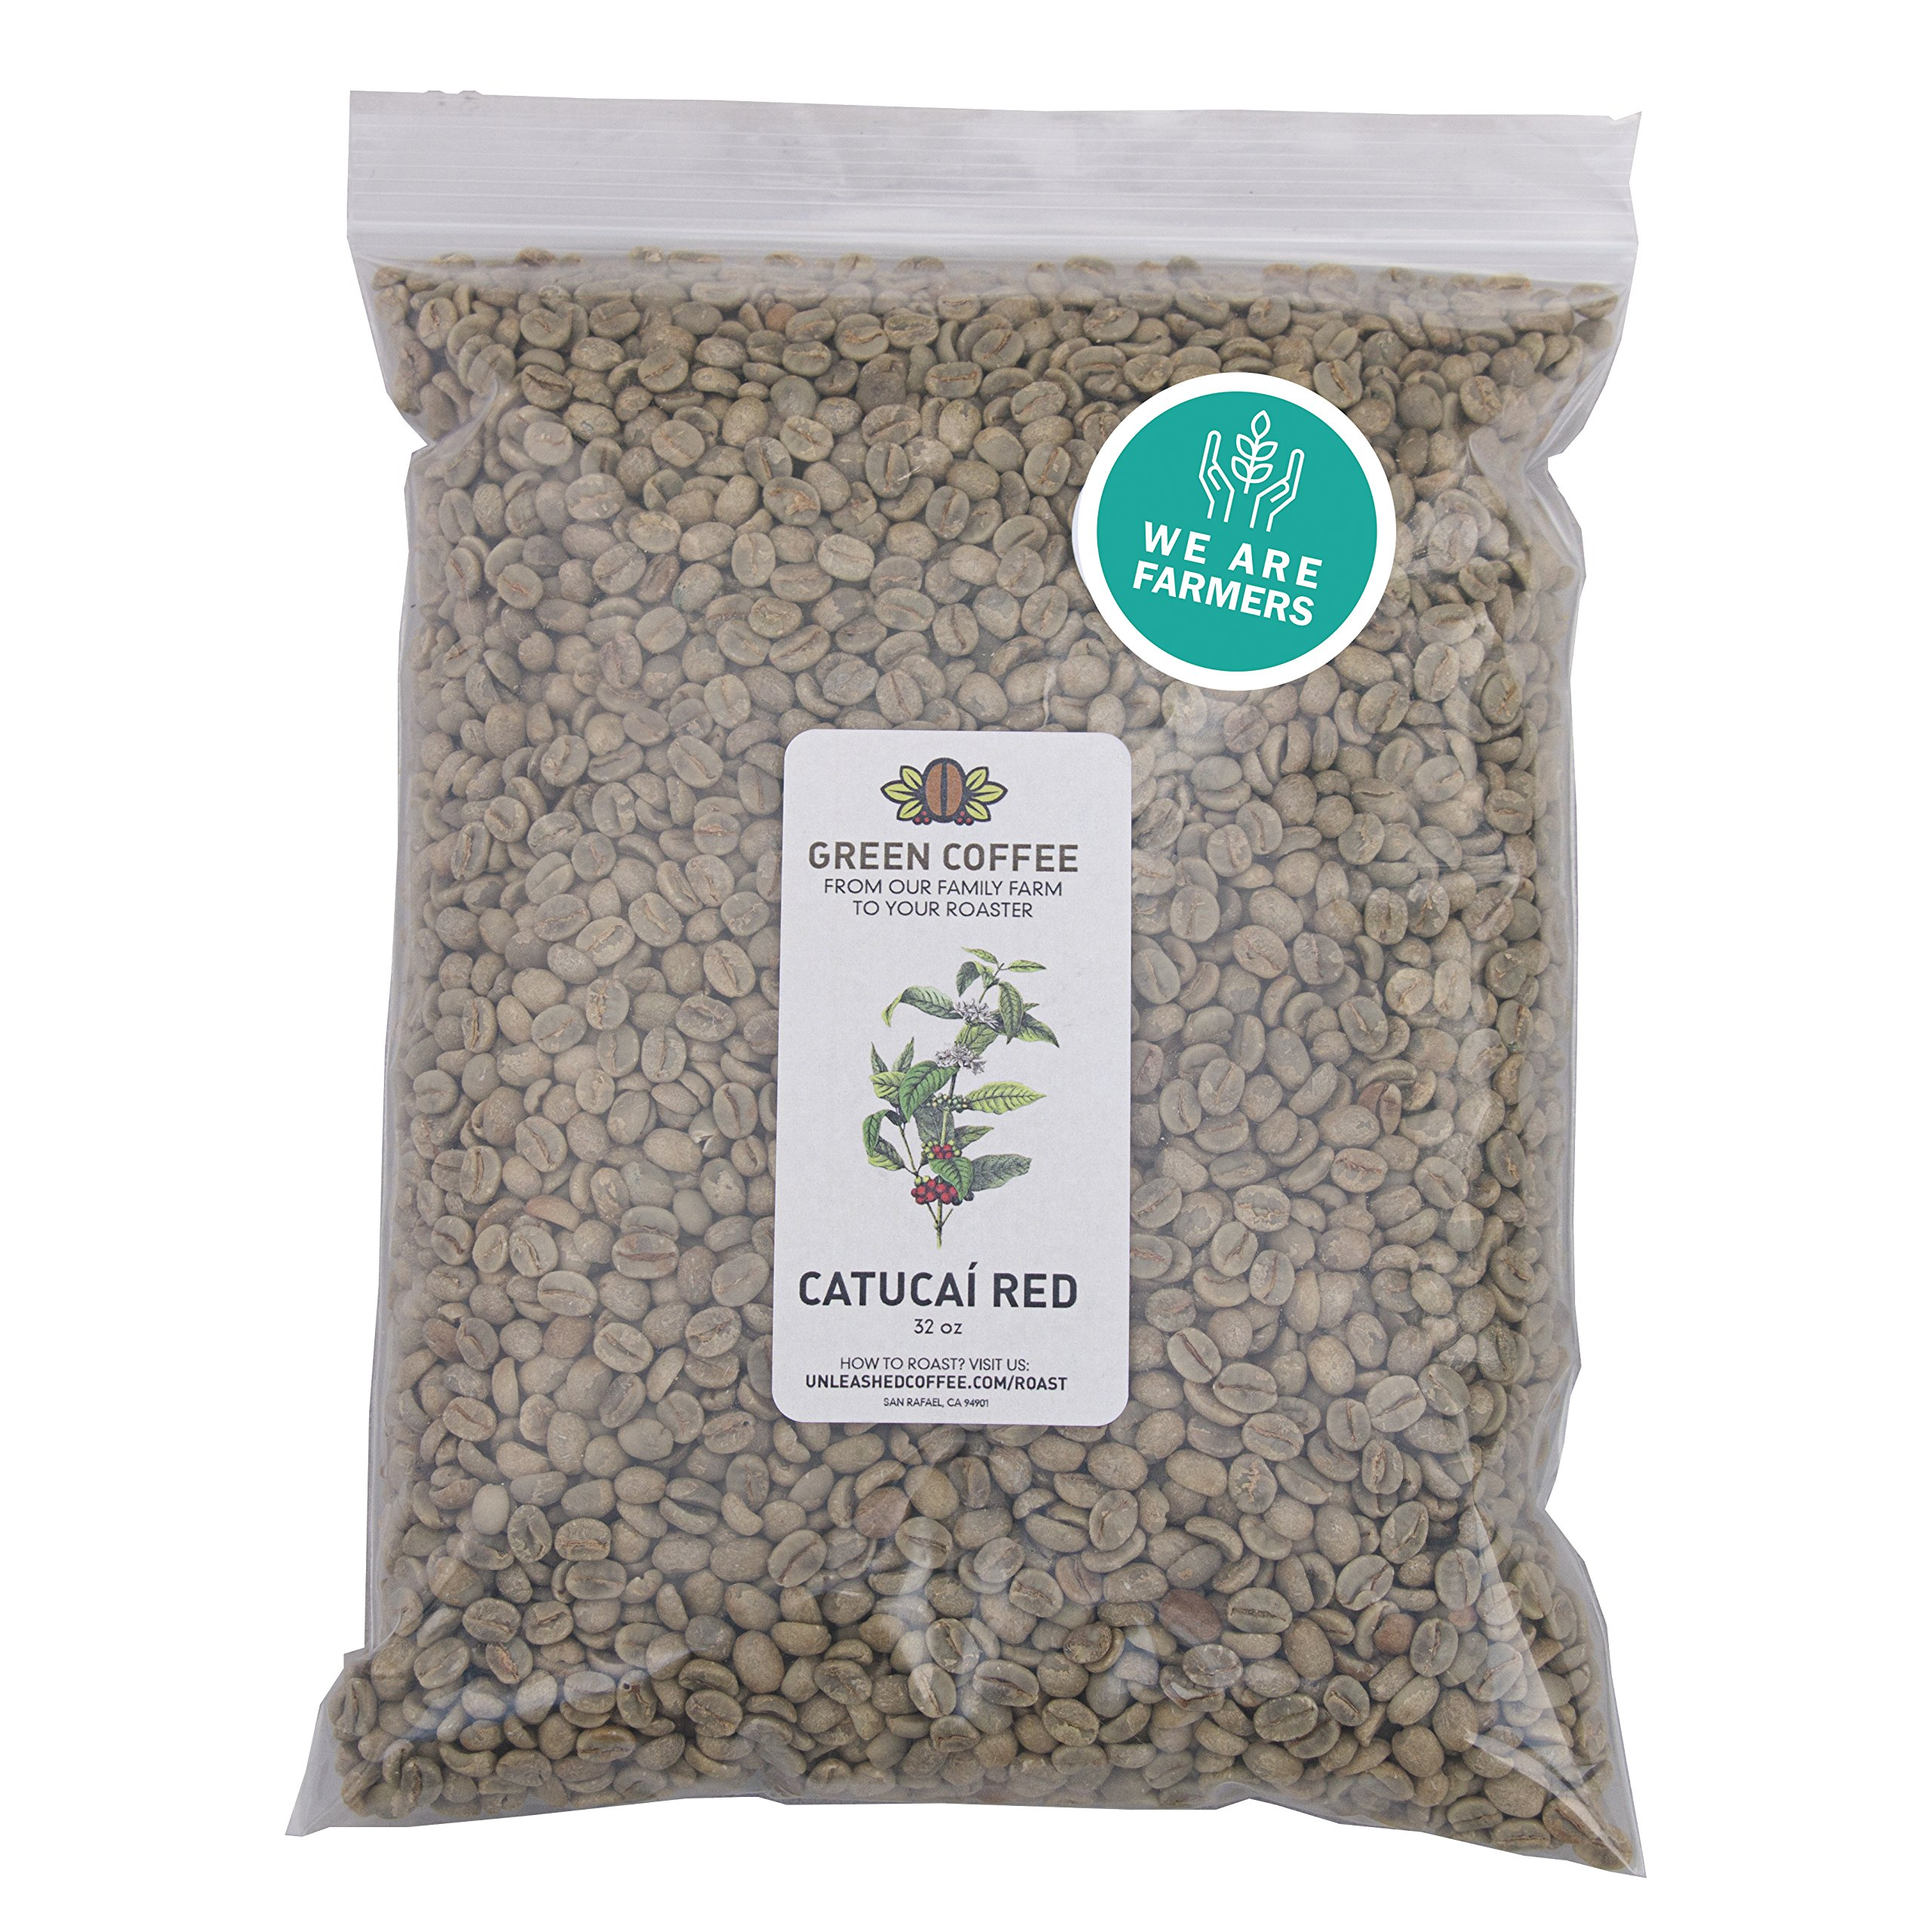 2lb Green Unroasted Coffee Brazil Catucai Red - From our family farm